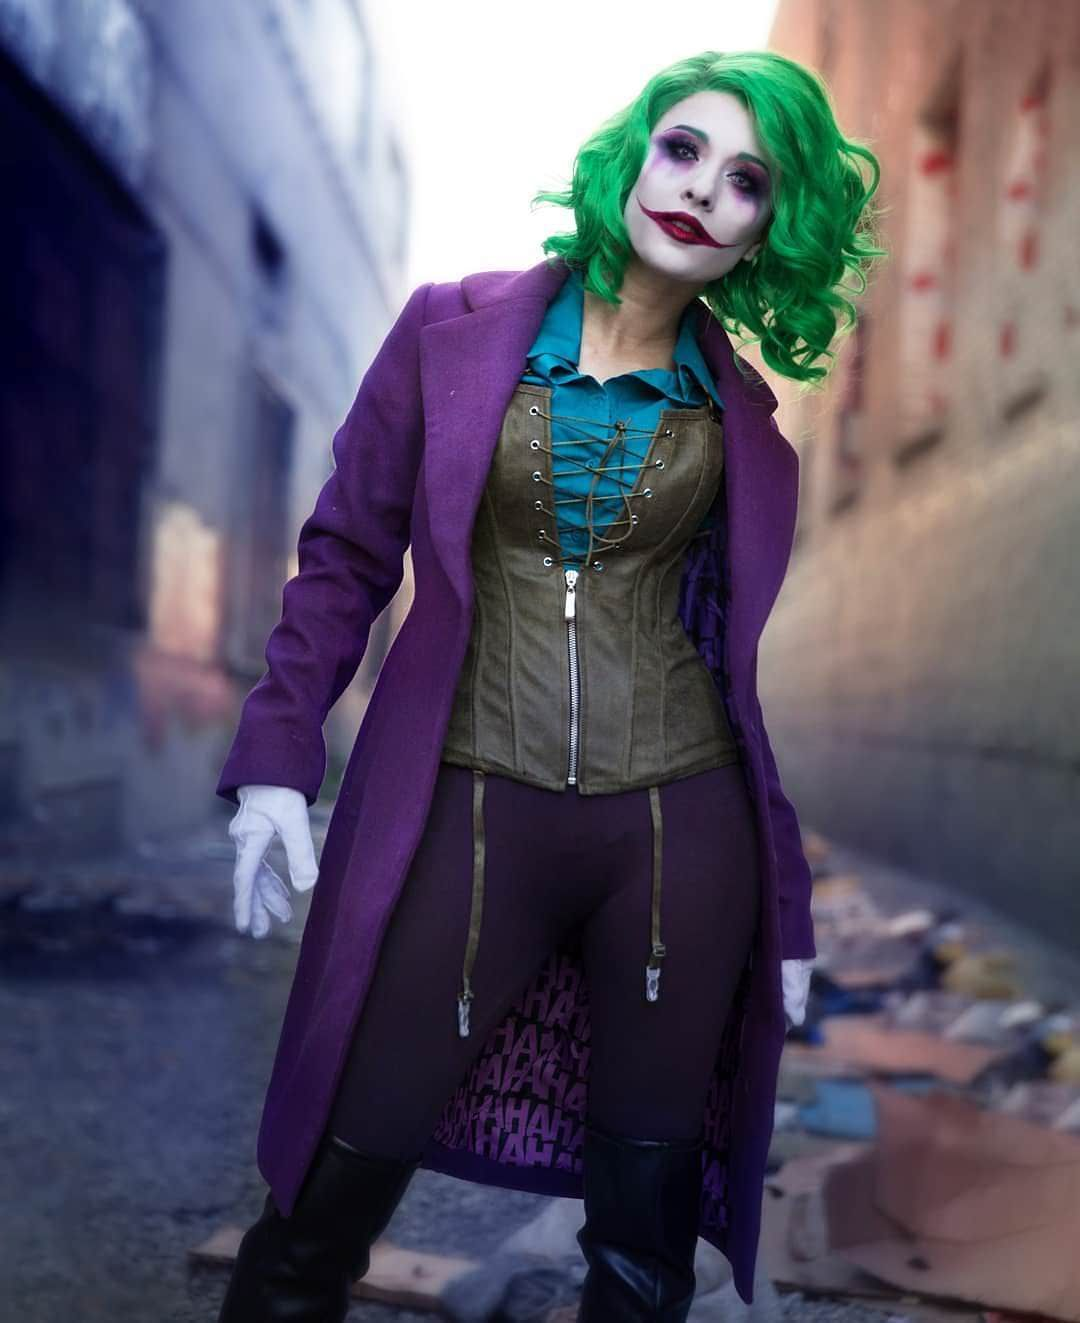 40 Pics Memes To Slay Your Boredom Female Joker Cosplay Halloween Outfits Cosplay Outfits